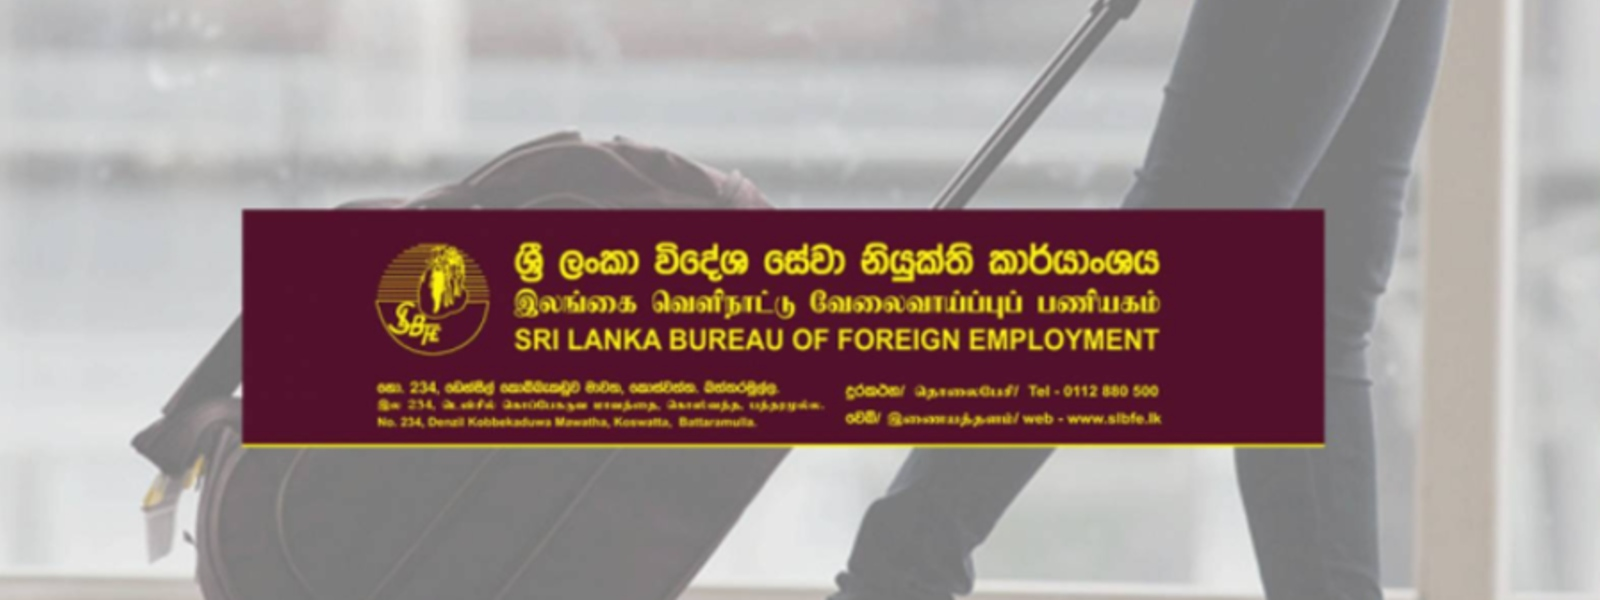 67 SL migrant workers have died from COVID-19: SLBFE